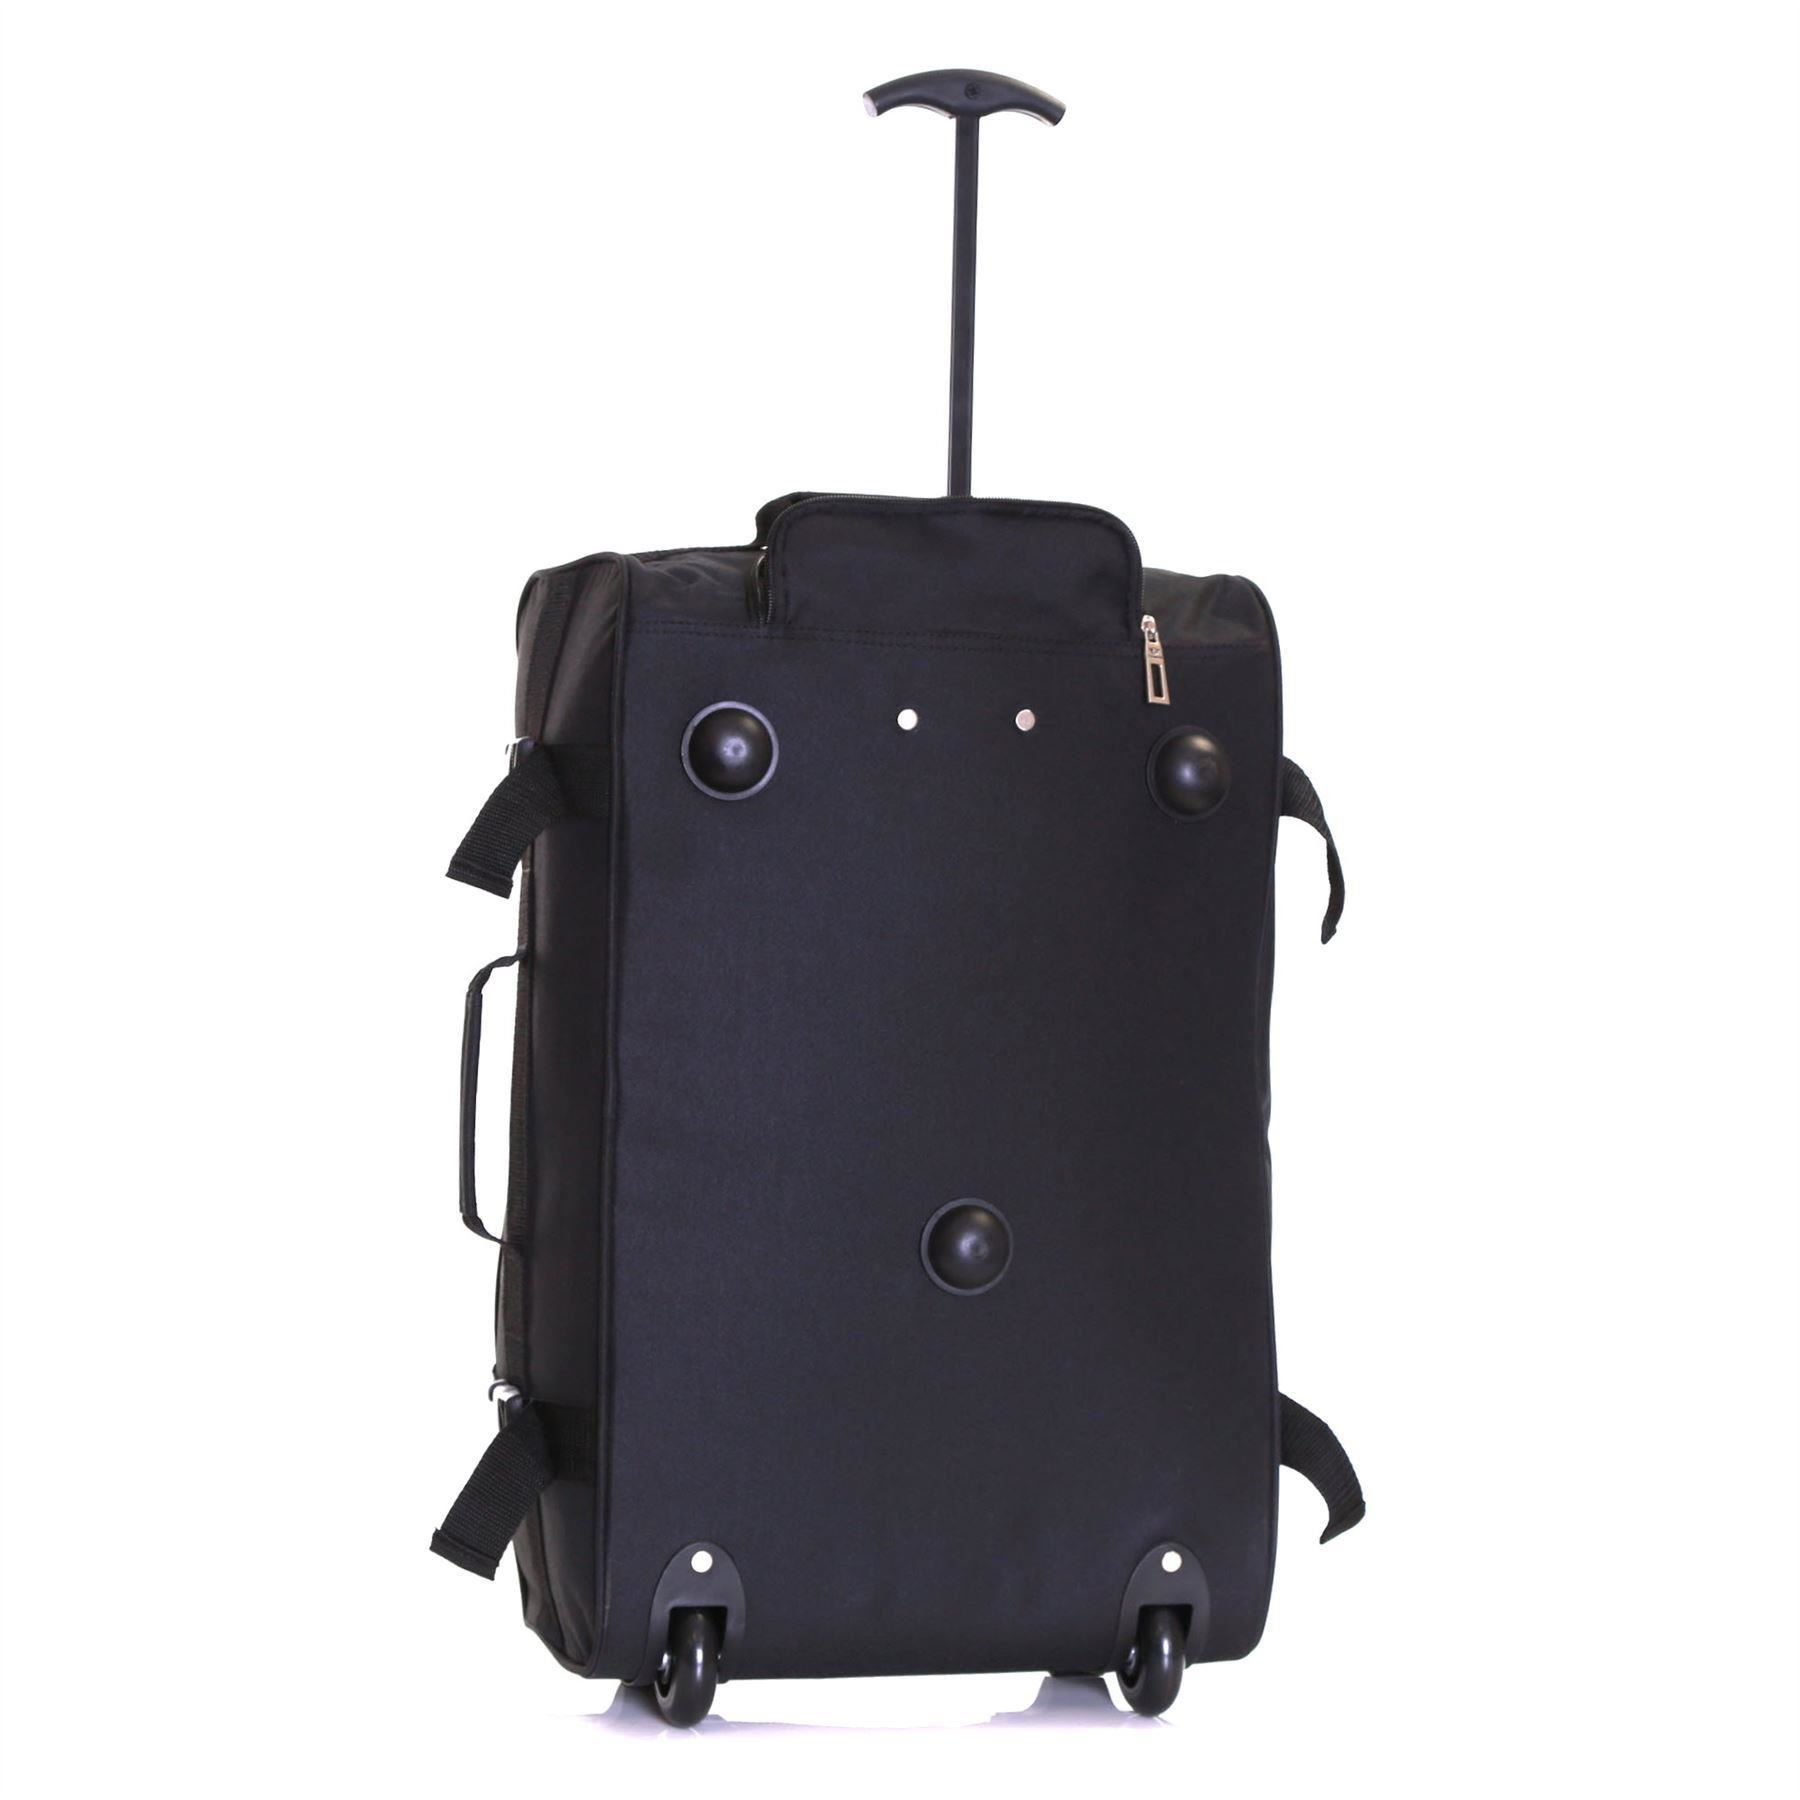 Ryanair-Easyjet-Set-of-2-Cabin-Approved-Hand-Trolley-Suitcases-Luggage-Case-Bags thumbnail 15